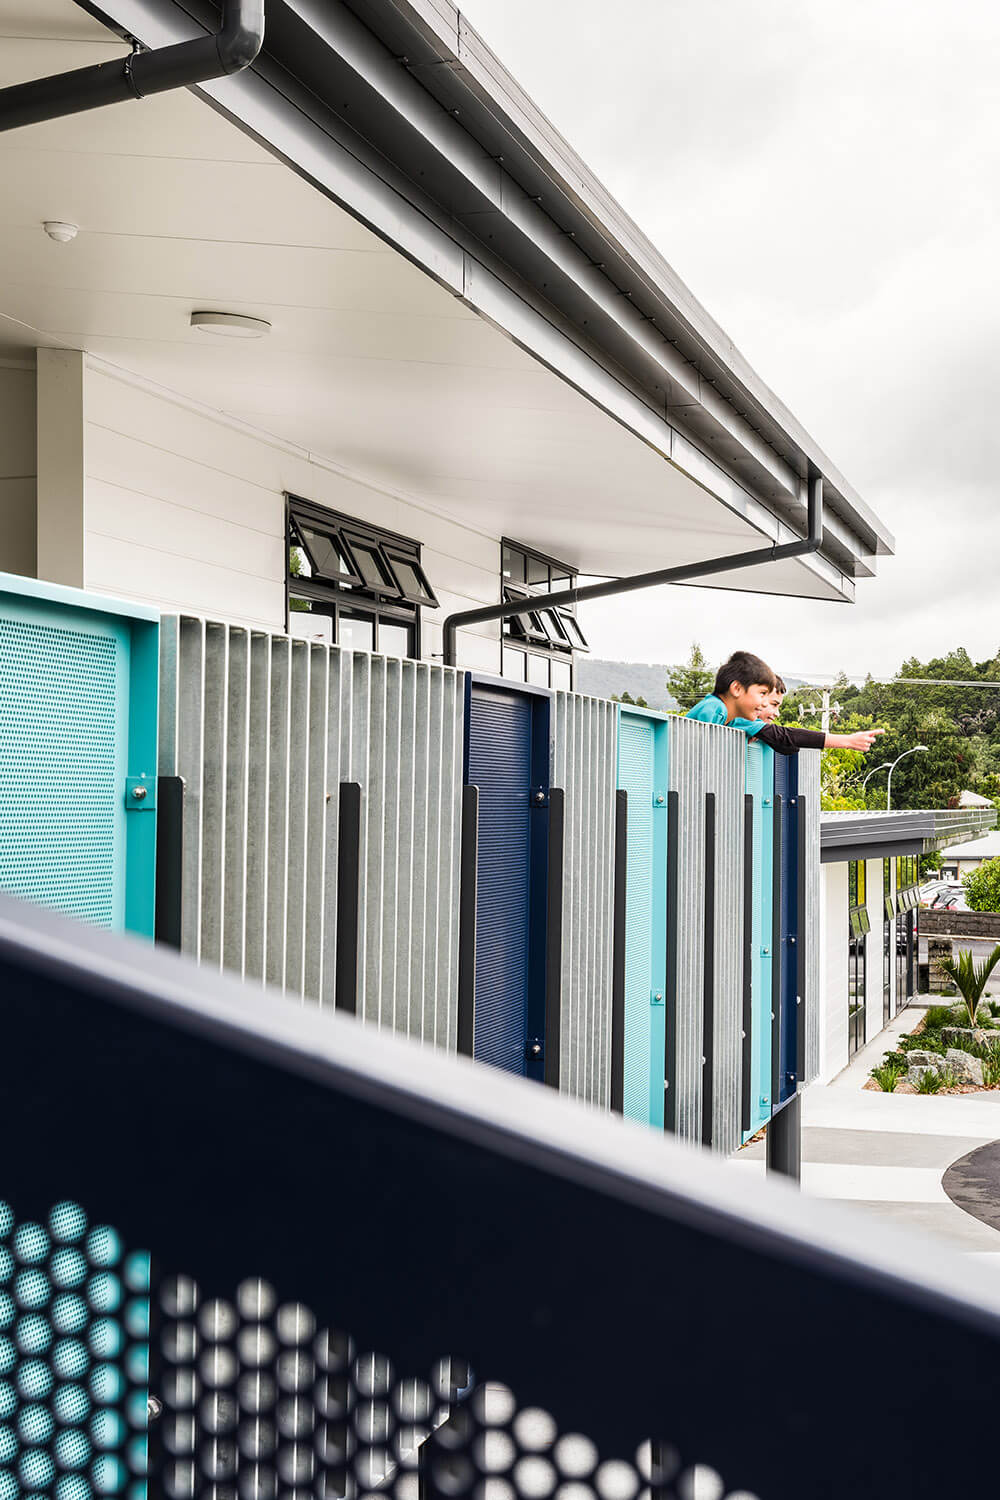 Balustrades reflect the school colours